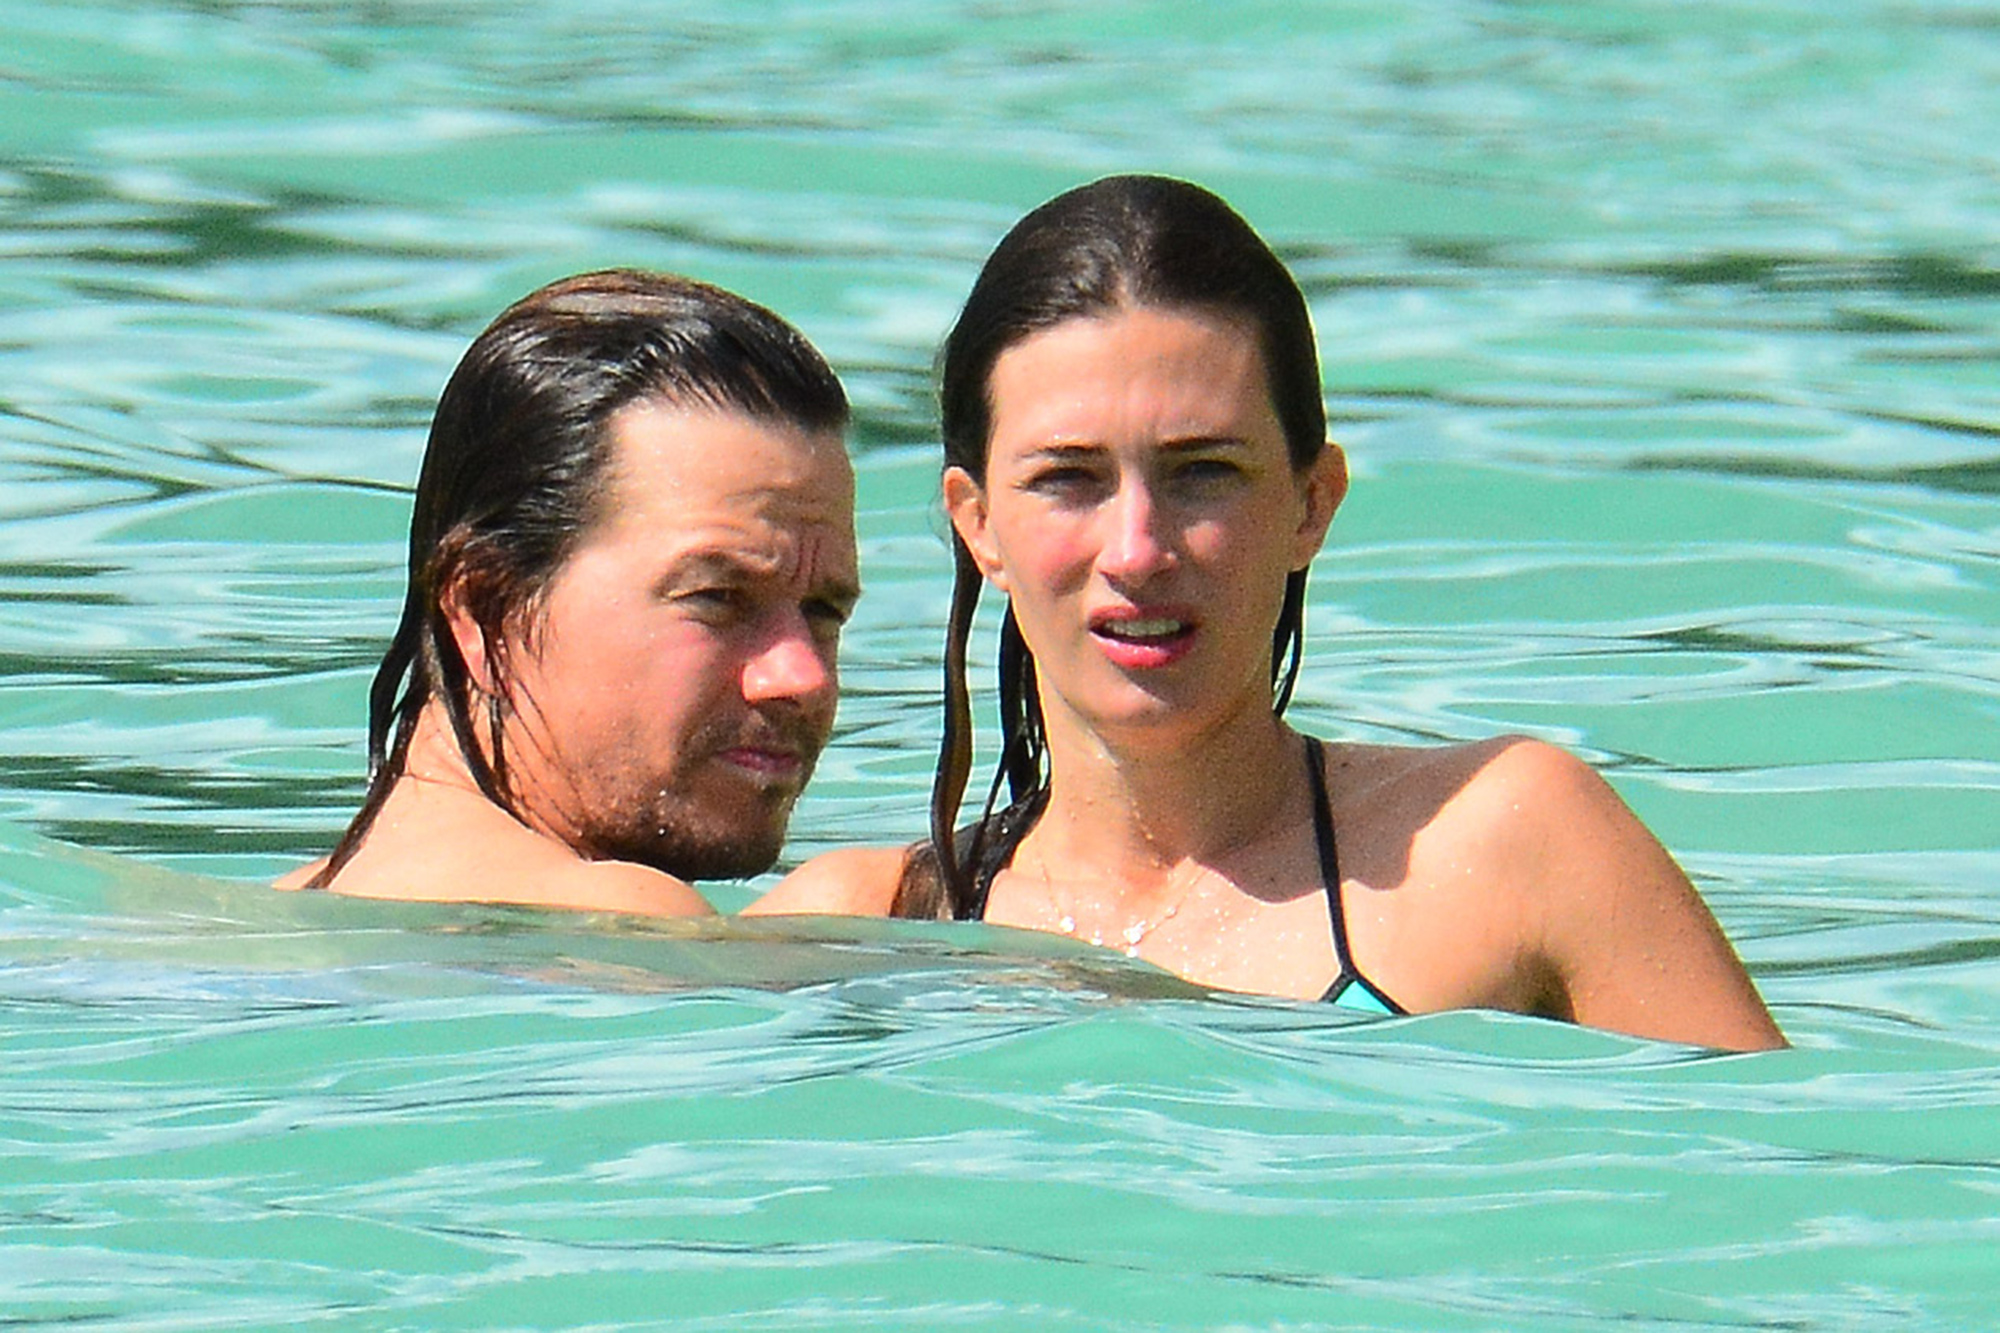 Mark Wahlberg and wife Rhea spotted relaxing and enjoying a swim at the beach while on holiday in Barbados. Pictured: Mark Wahlberg, Rhea Durham Ref: SPL1375489 171016 Picture by: Shanice King/246paps/Splash News Splash News and Pictures Los Angeles:310-821-2666 New York: 212-619-2666 London: 870-934-2666 photodesk@splashnews.com